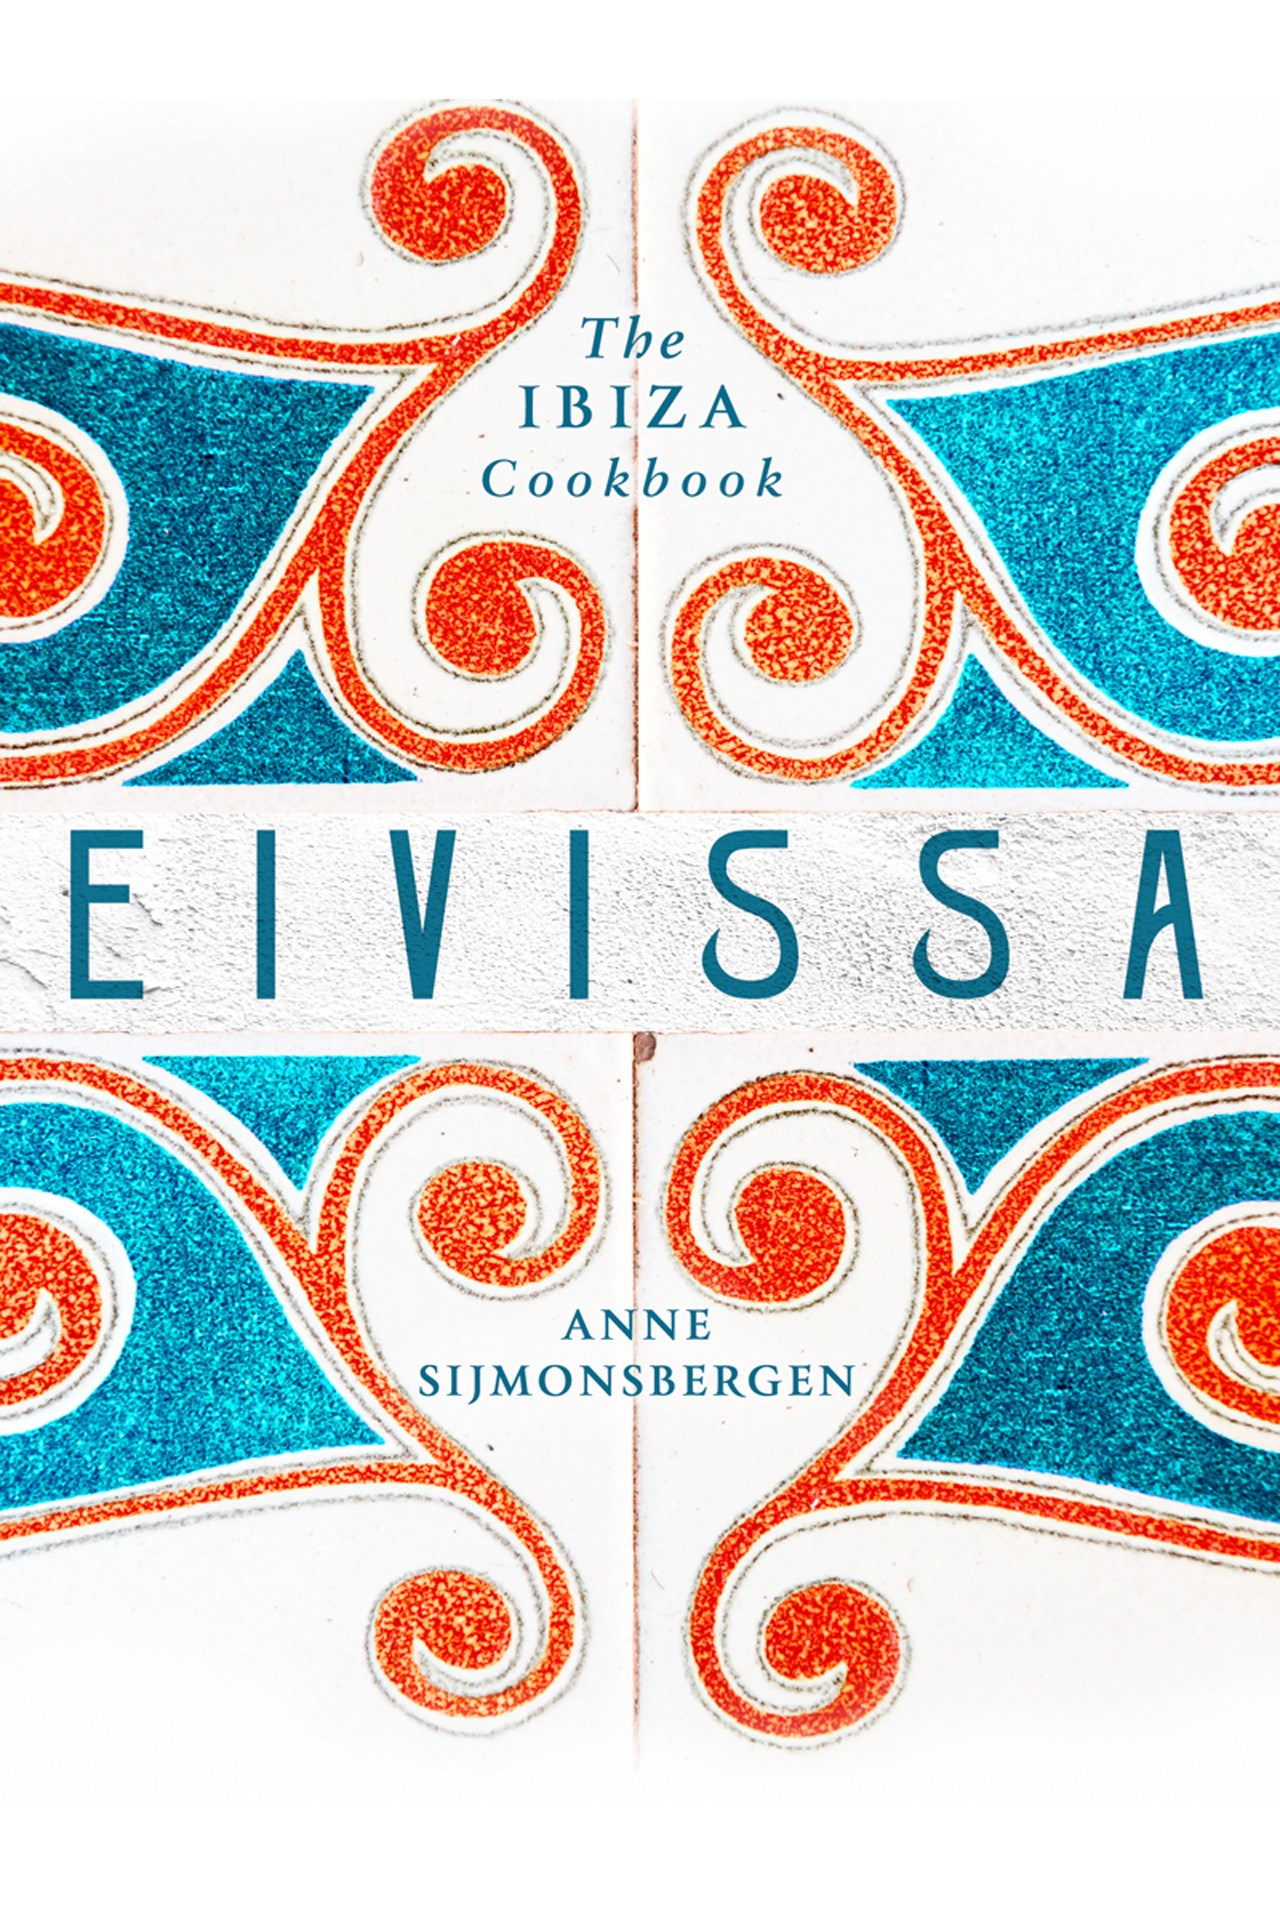 'The Ibiza Cookbook' by Anne Sijmonsbergen